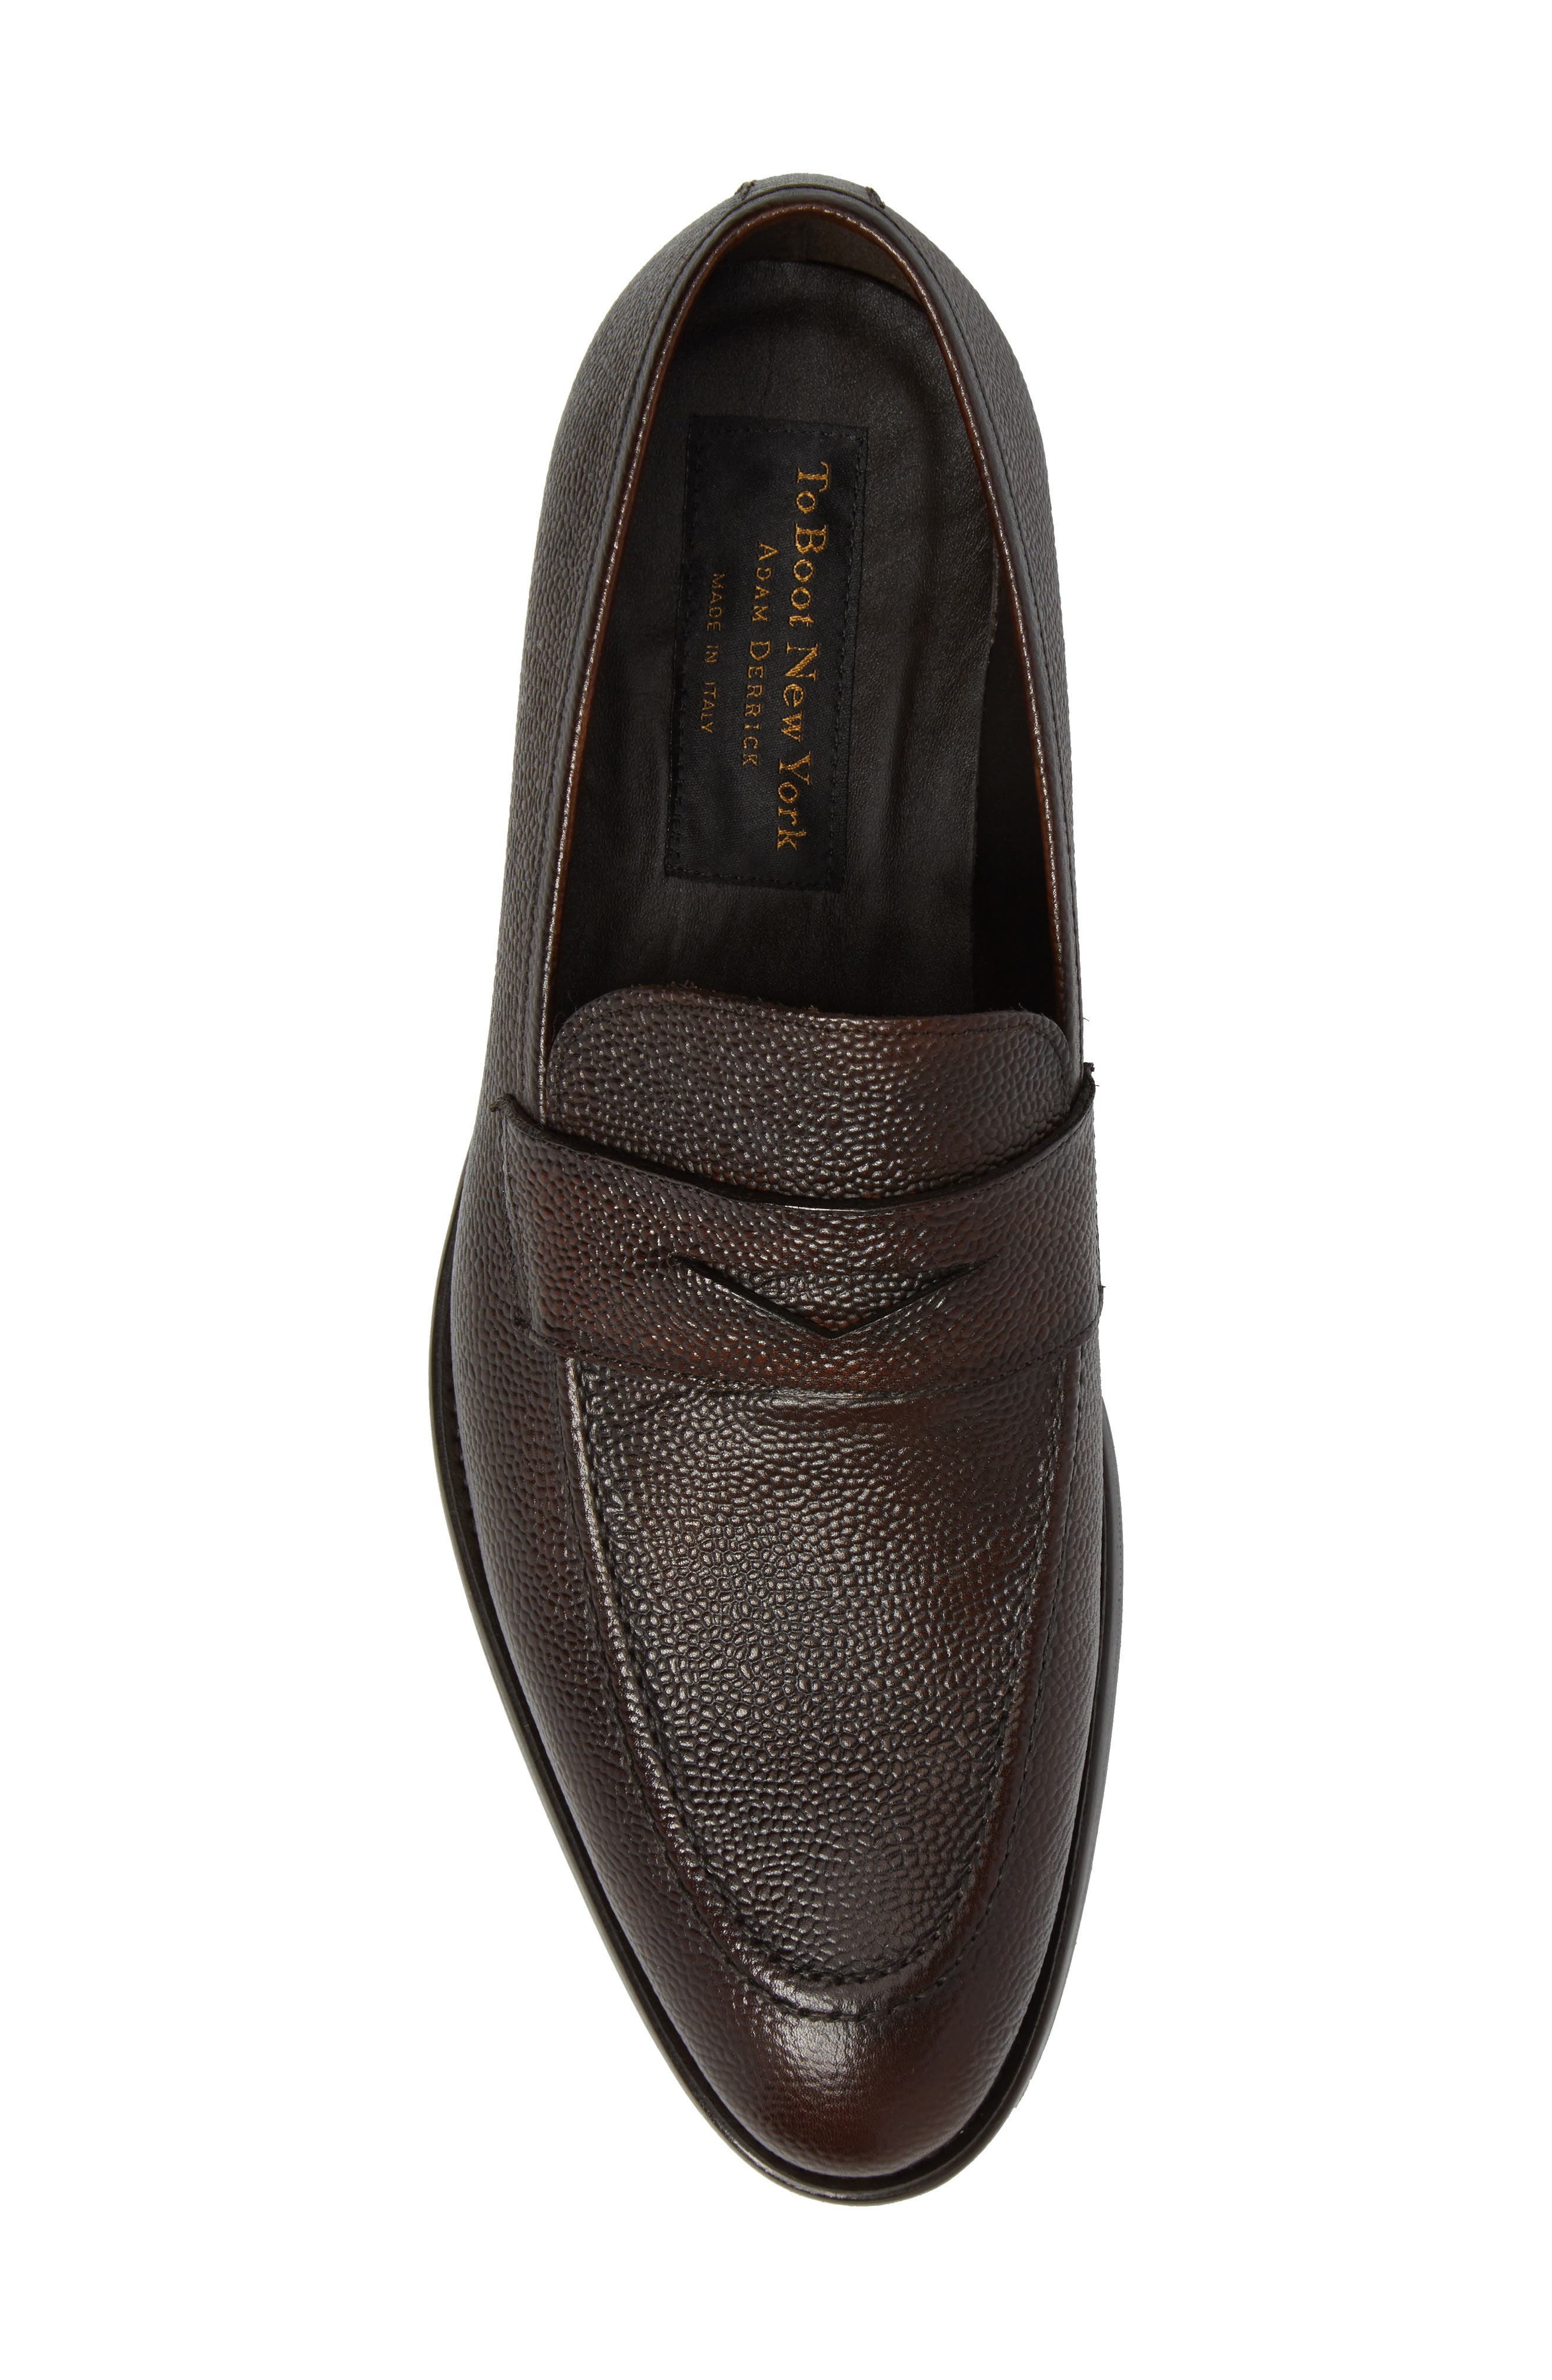 James Penny Loafer,                             Alternate thumbnail 5, color,                             Brown Leather